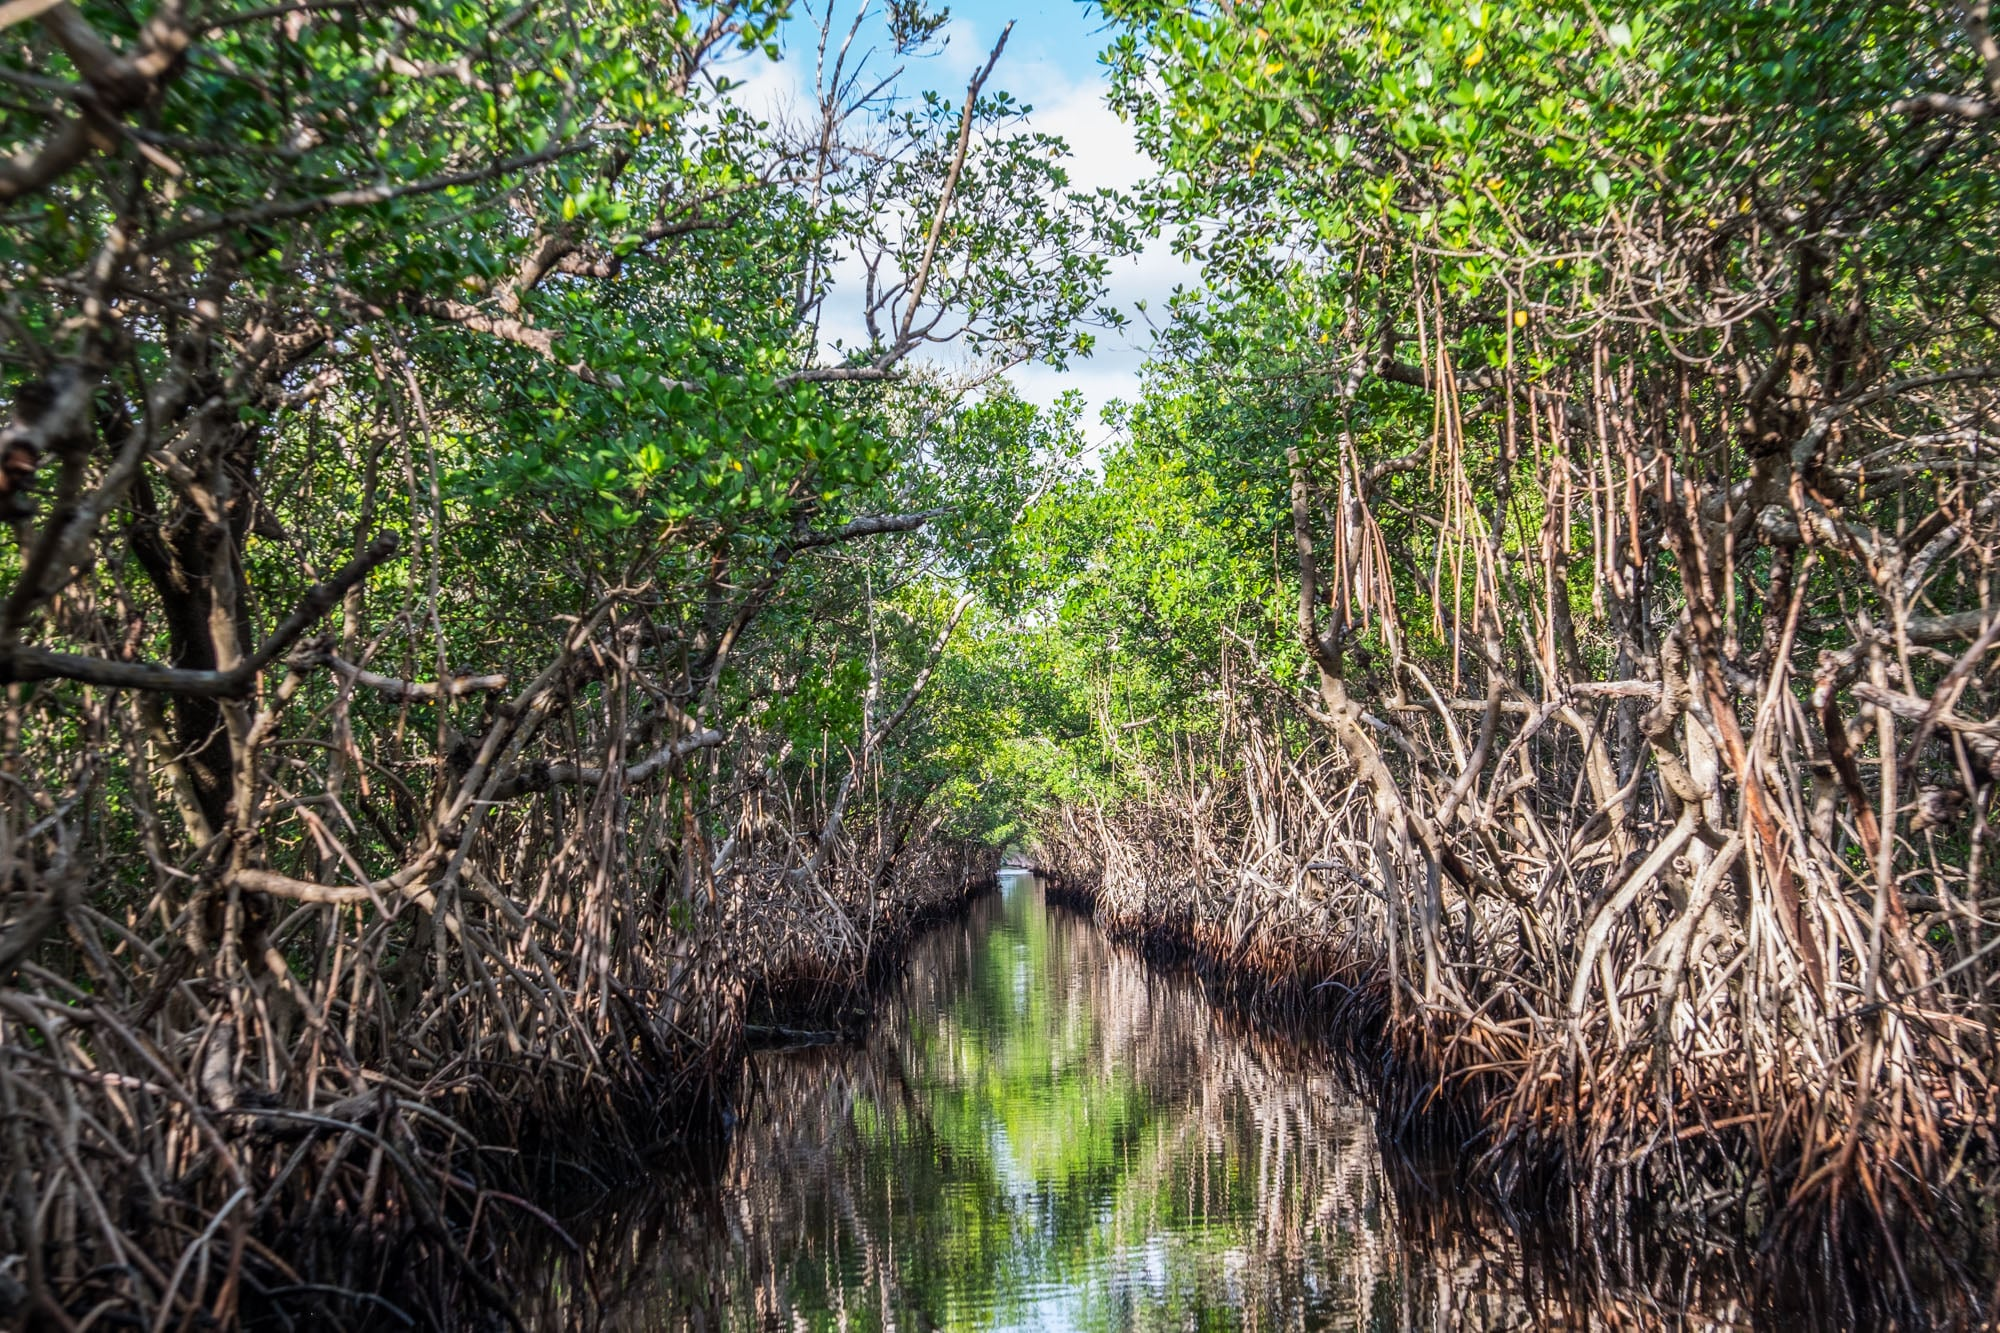 Mangrove airboat ride.